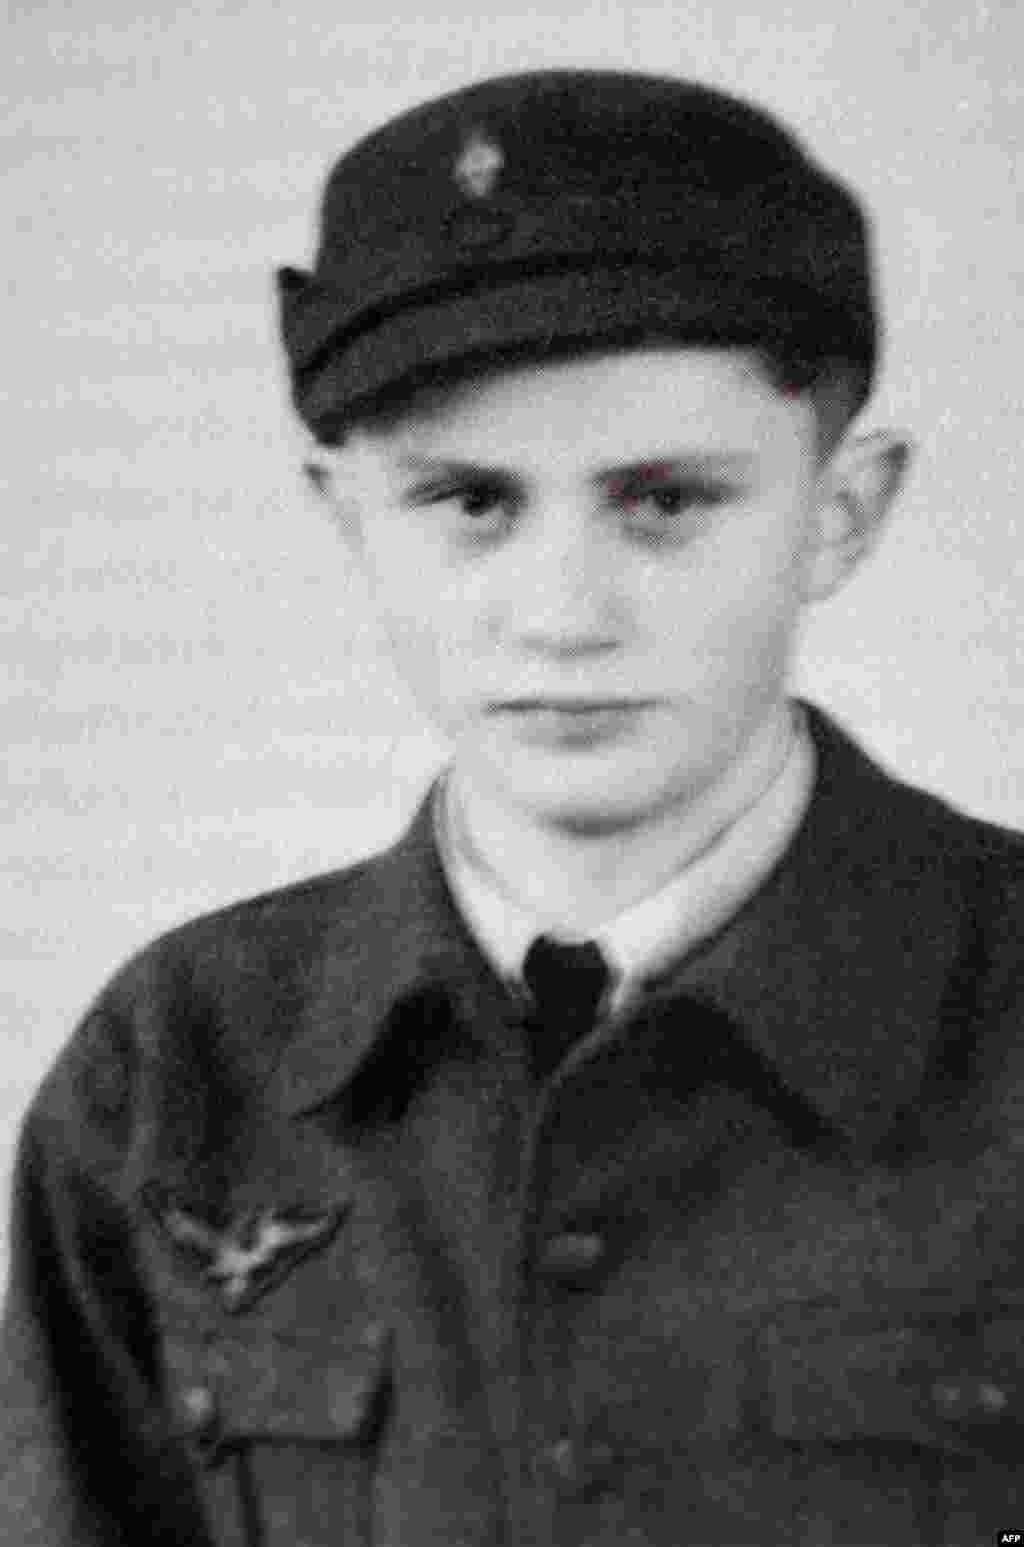 A photo taken in 1943 during World War II shows Joseph Ratzinger as a German Air Force assistant.